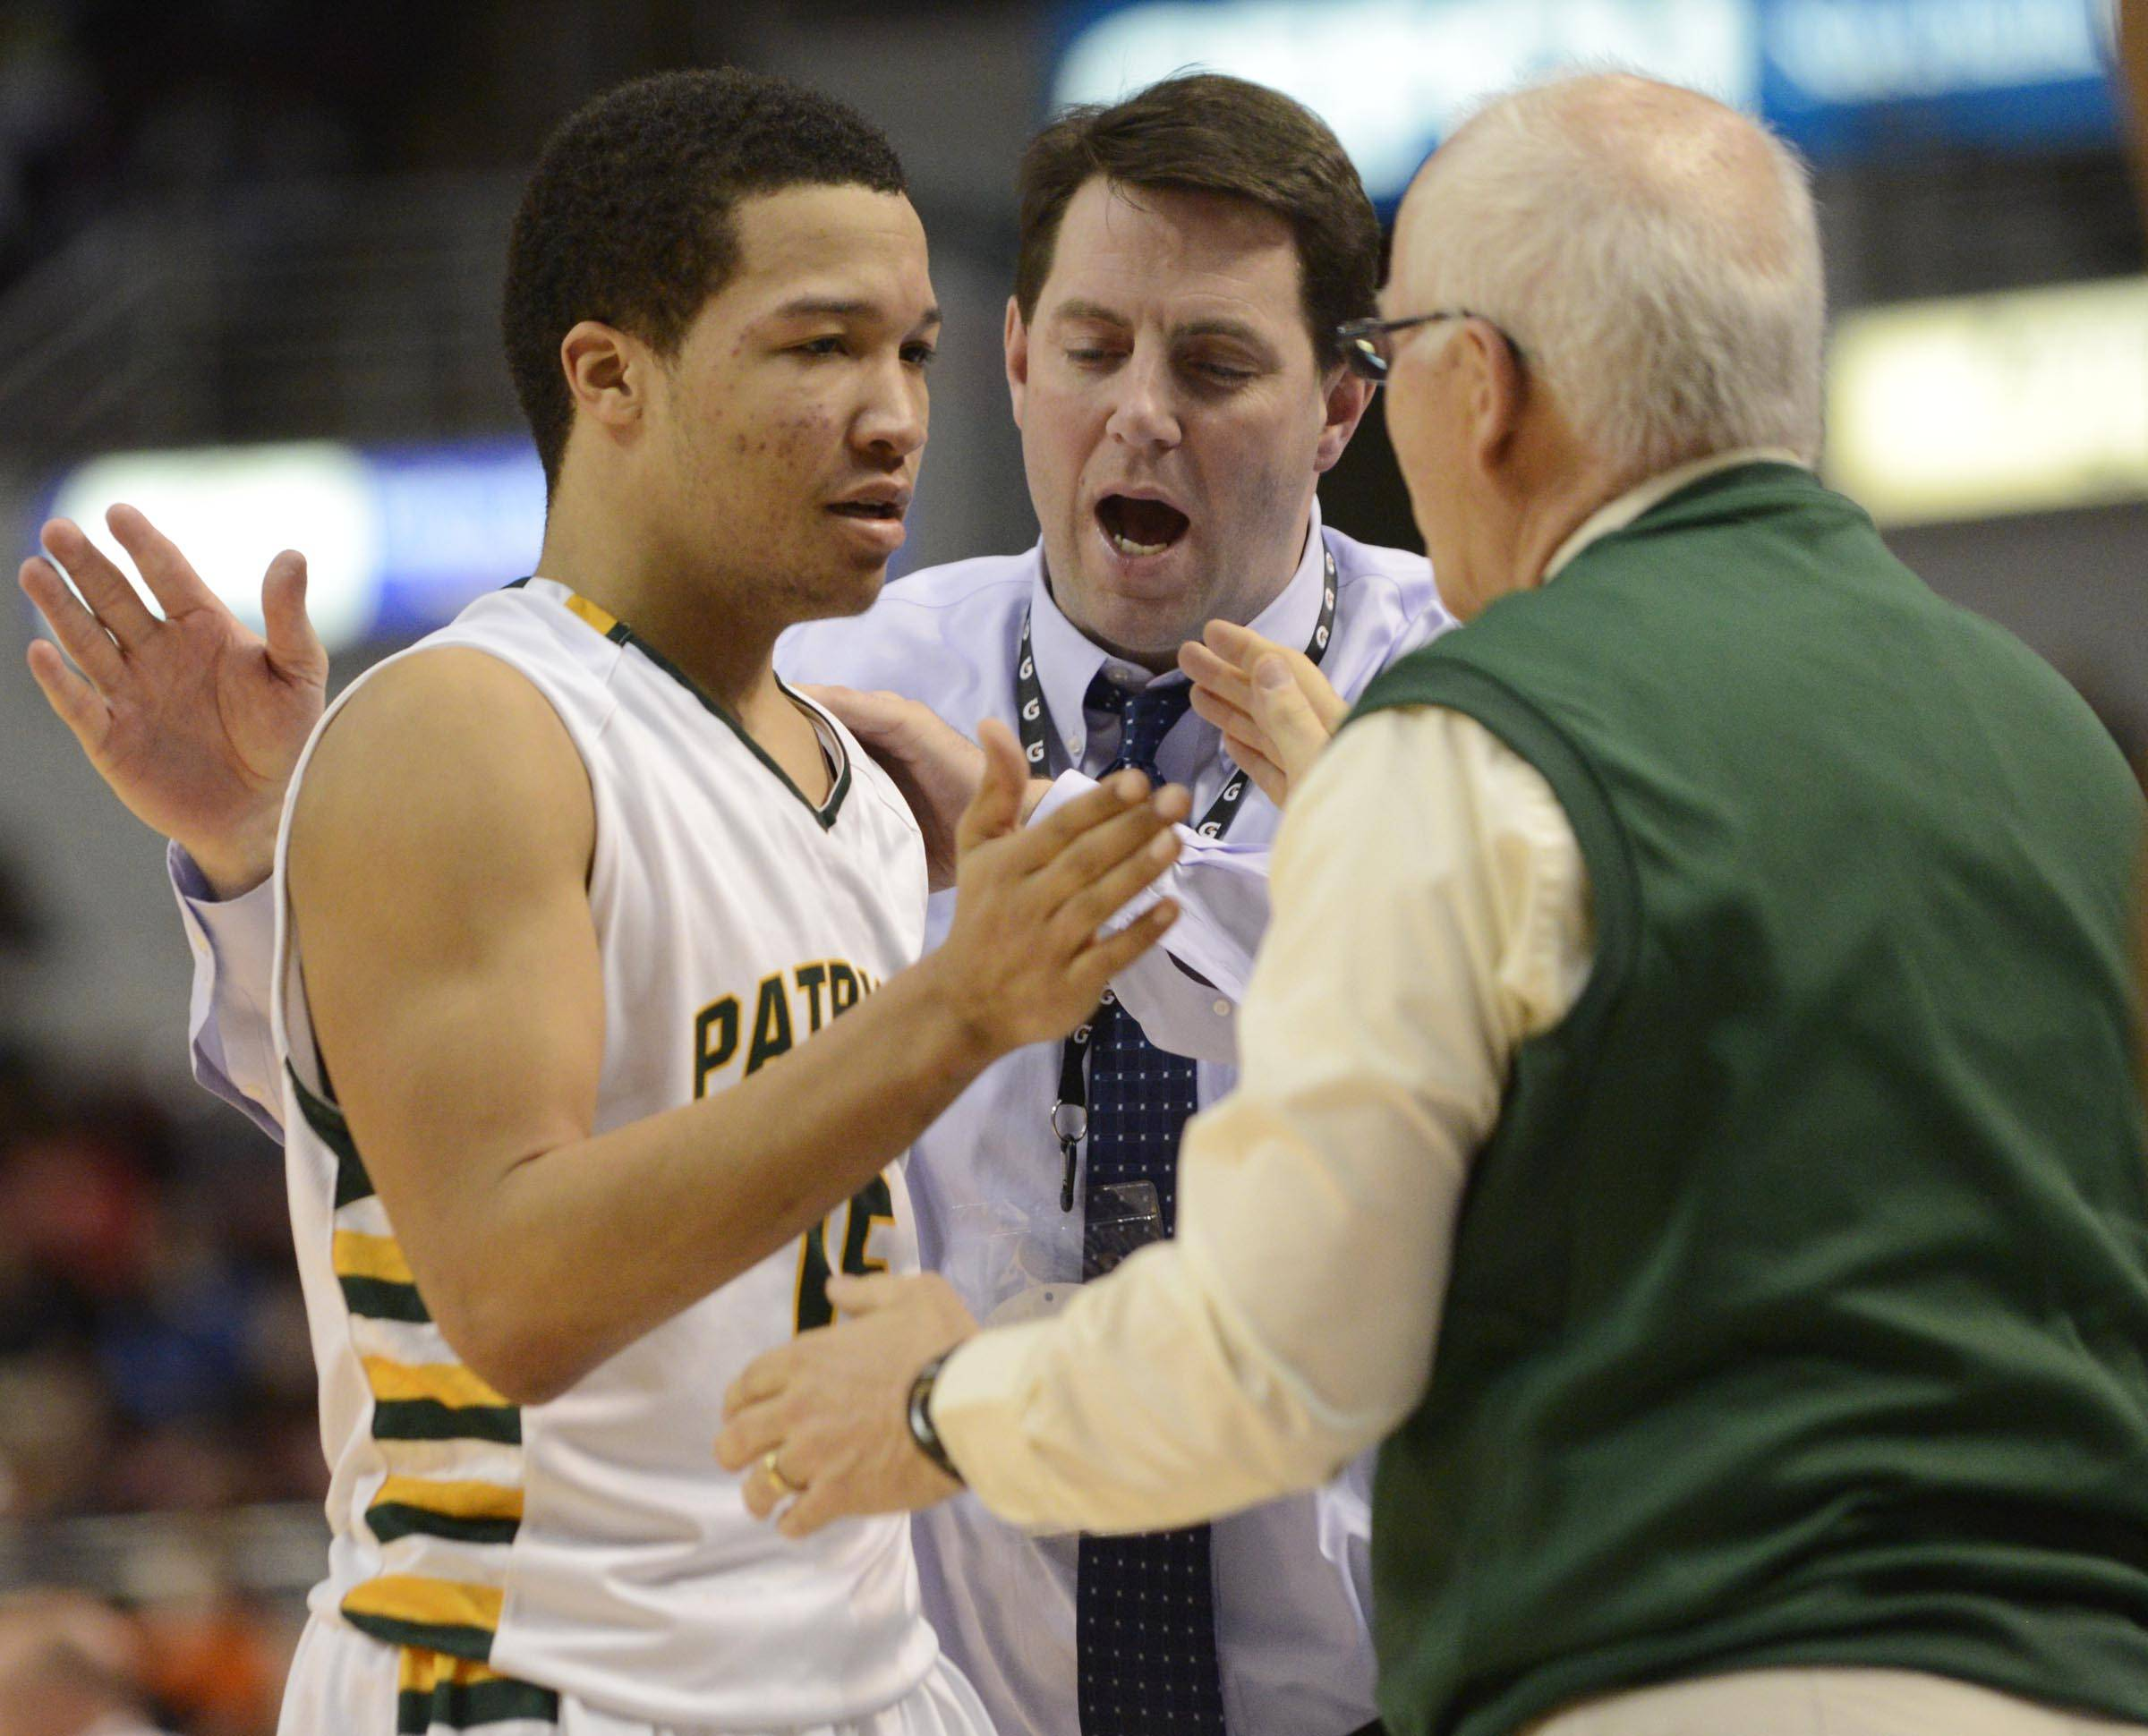 Stevenson's Jalen Brunson is met by his coaches as he leaves the game against Edwardsville in the Class 4A state third place game at Carver Arena in Peoria Saturday.